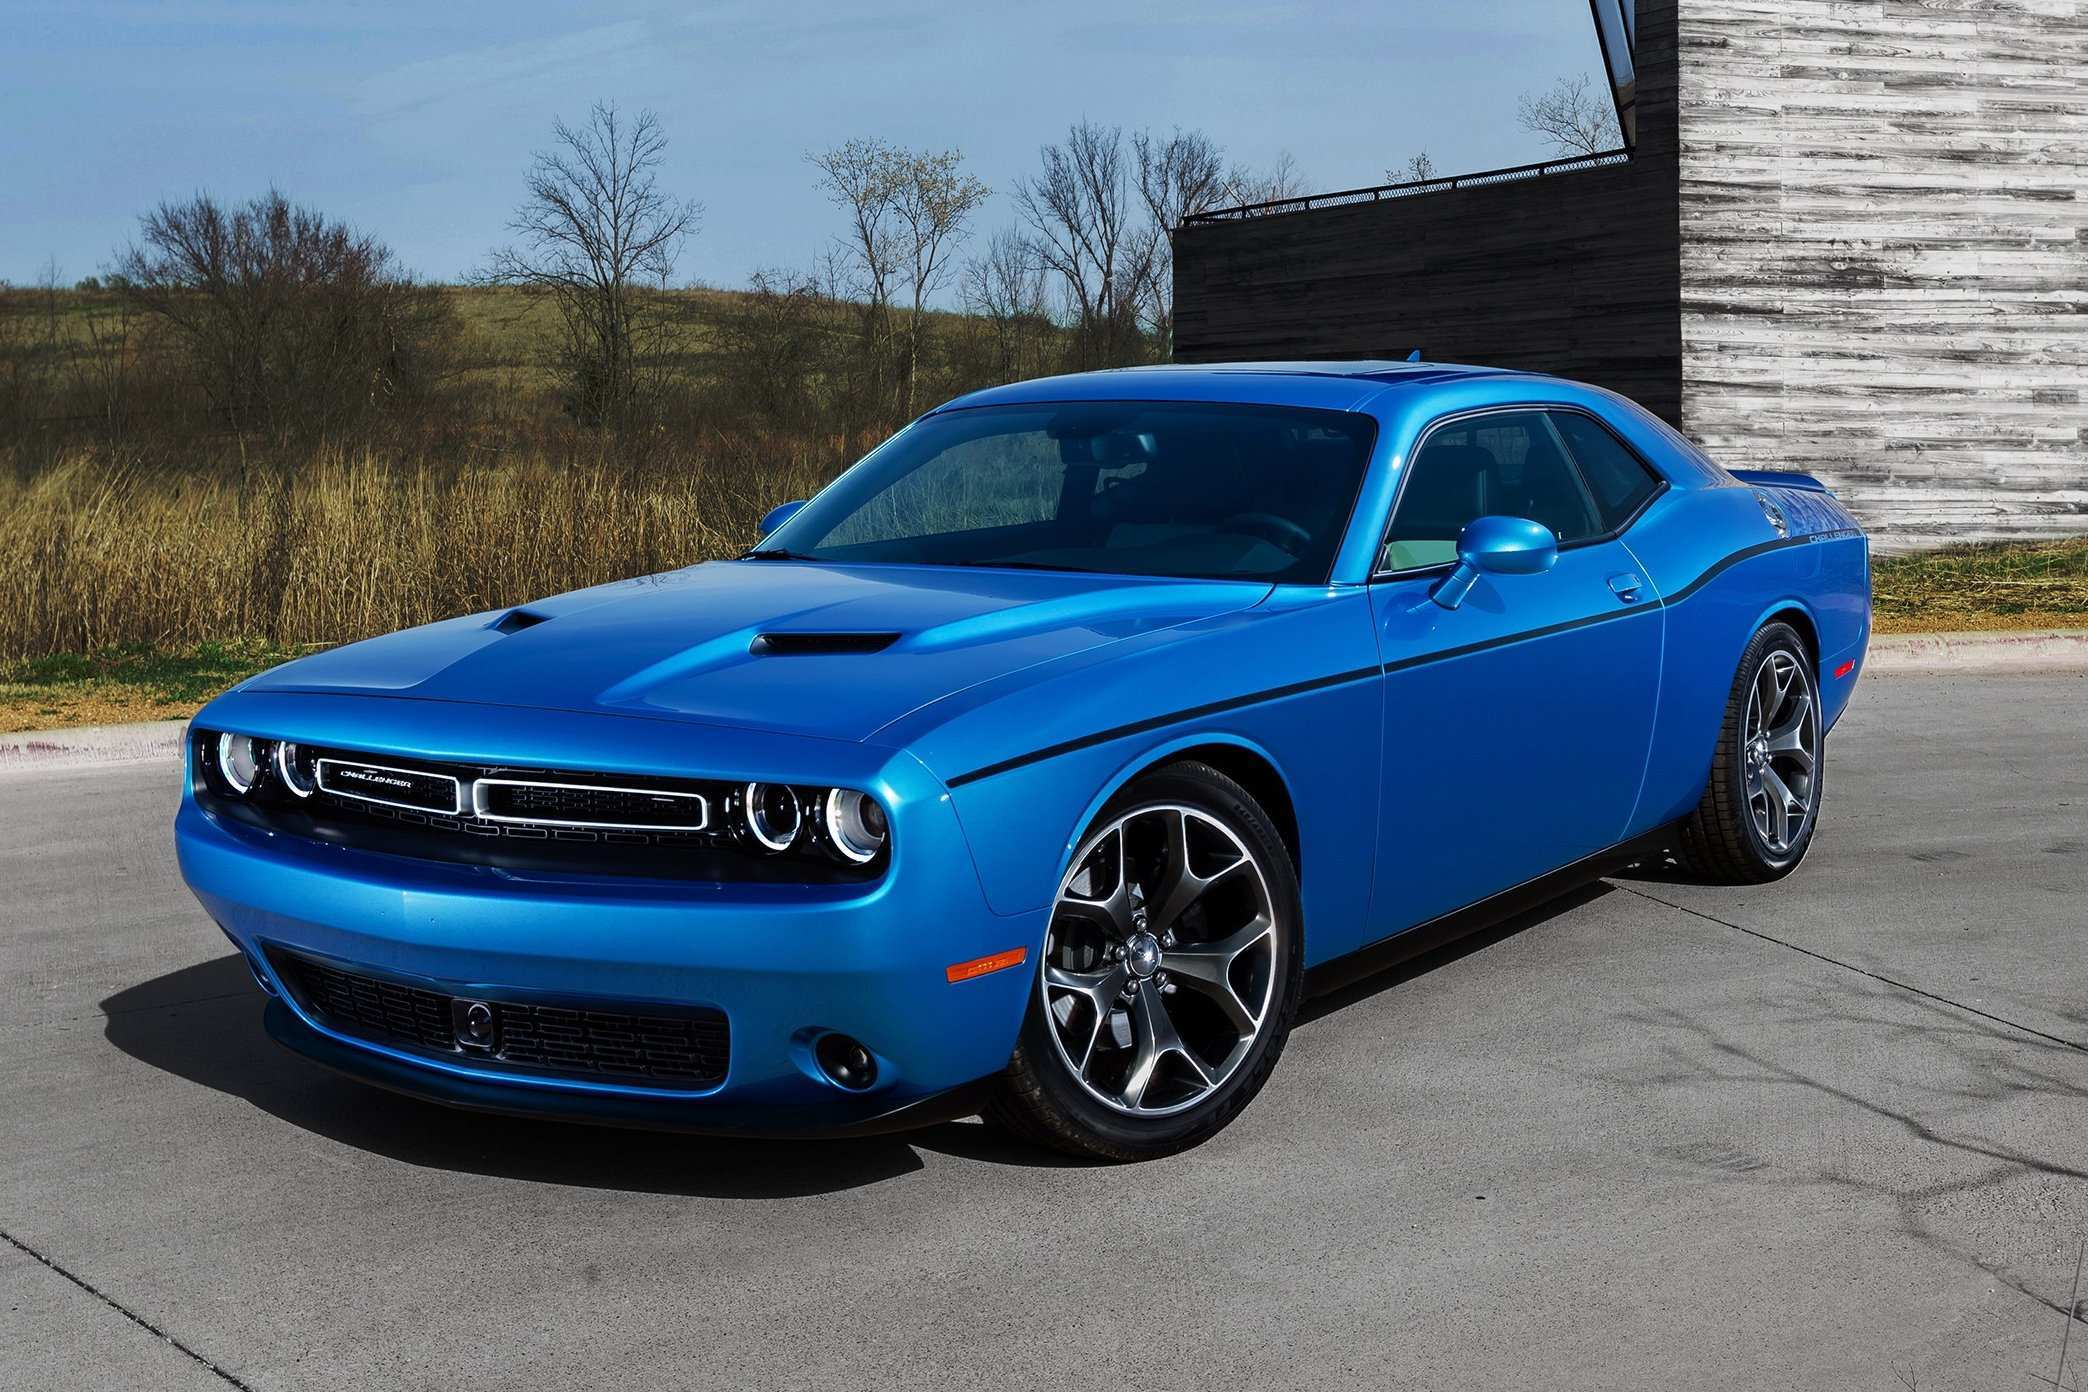 72 Concept of When Will The 2020 Dodge Challenger Come Out Overview for When Will The 2020 Dodge Challenger Come Out